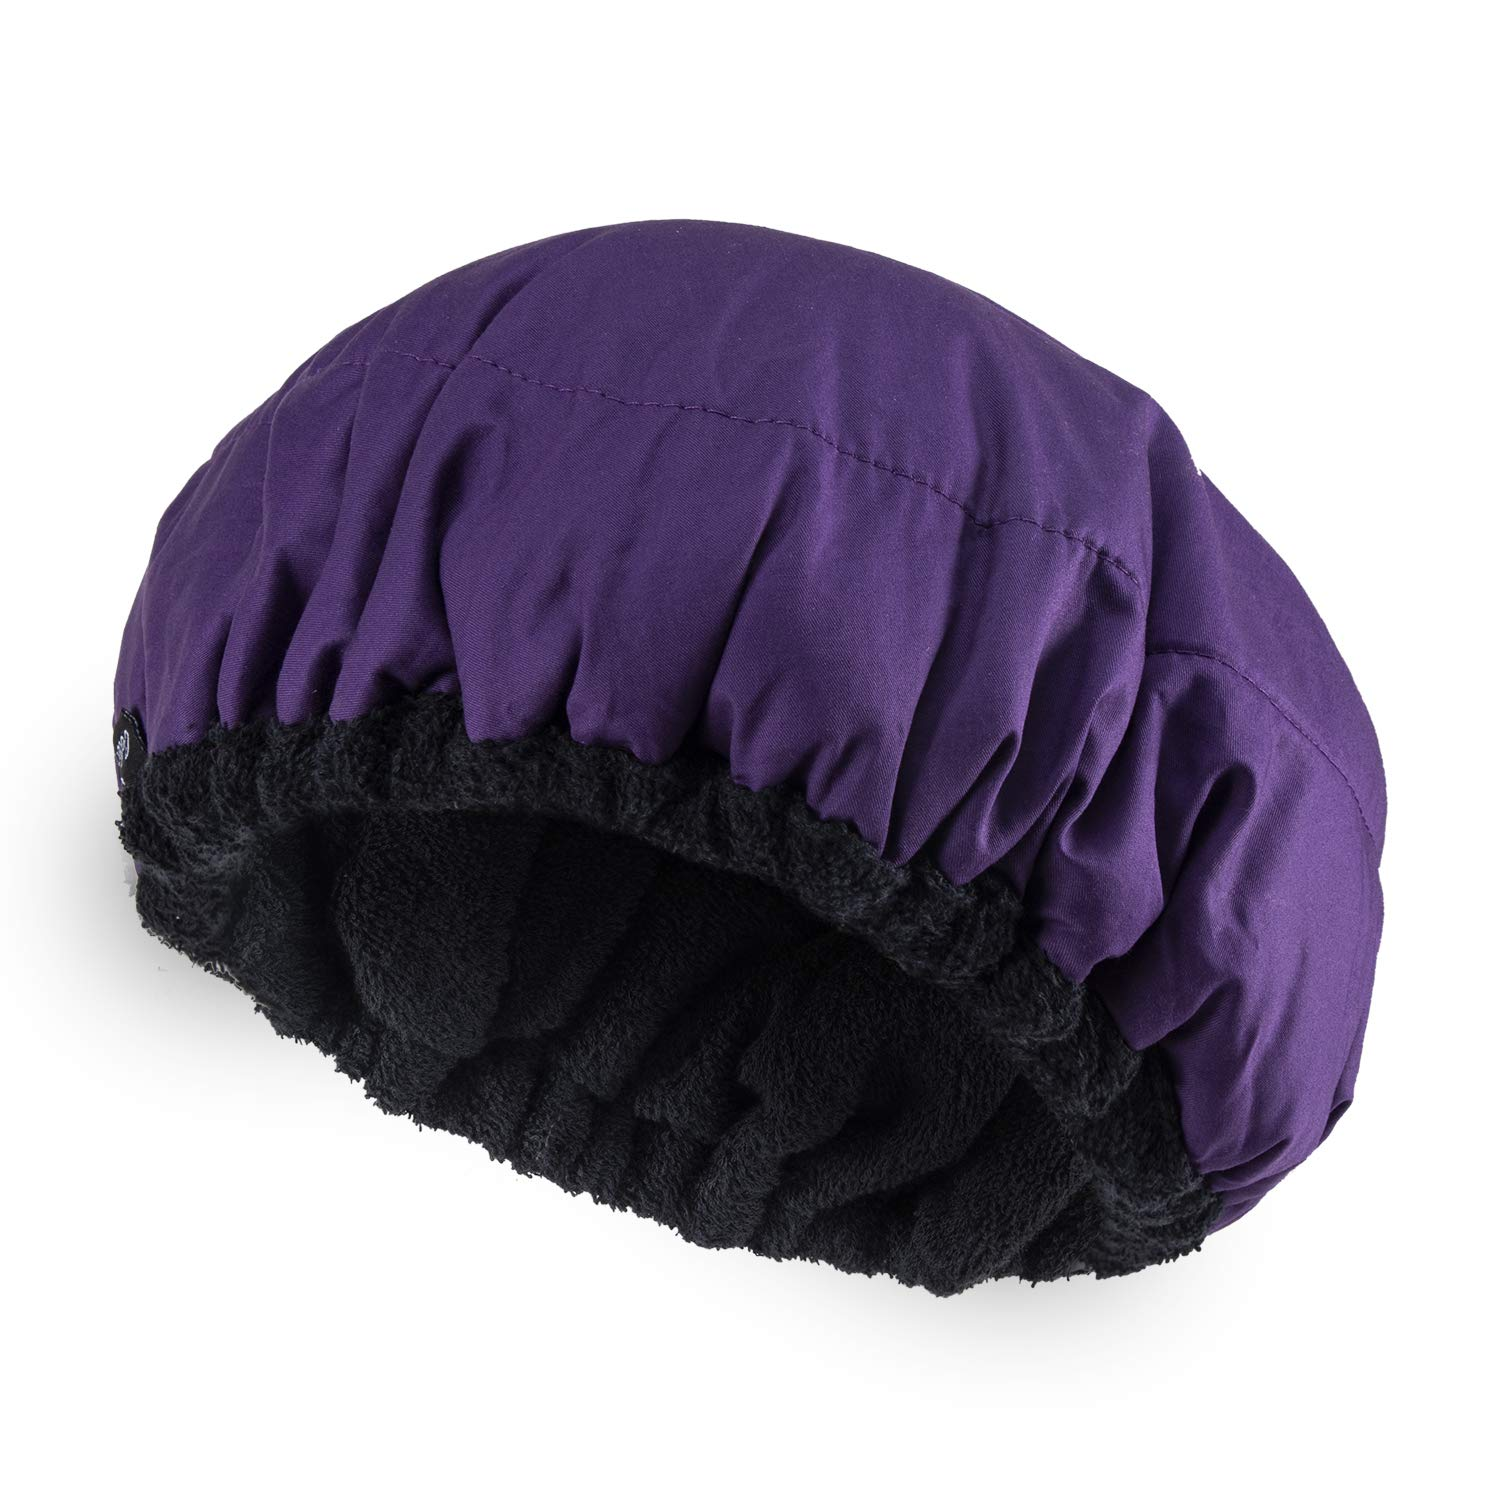 Deep Conditioning Heat Cap Microwavable Heat Cap for Steaming Hair Styling and Treatment Steam Cap Steaming Haircare Therapy (Purple)